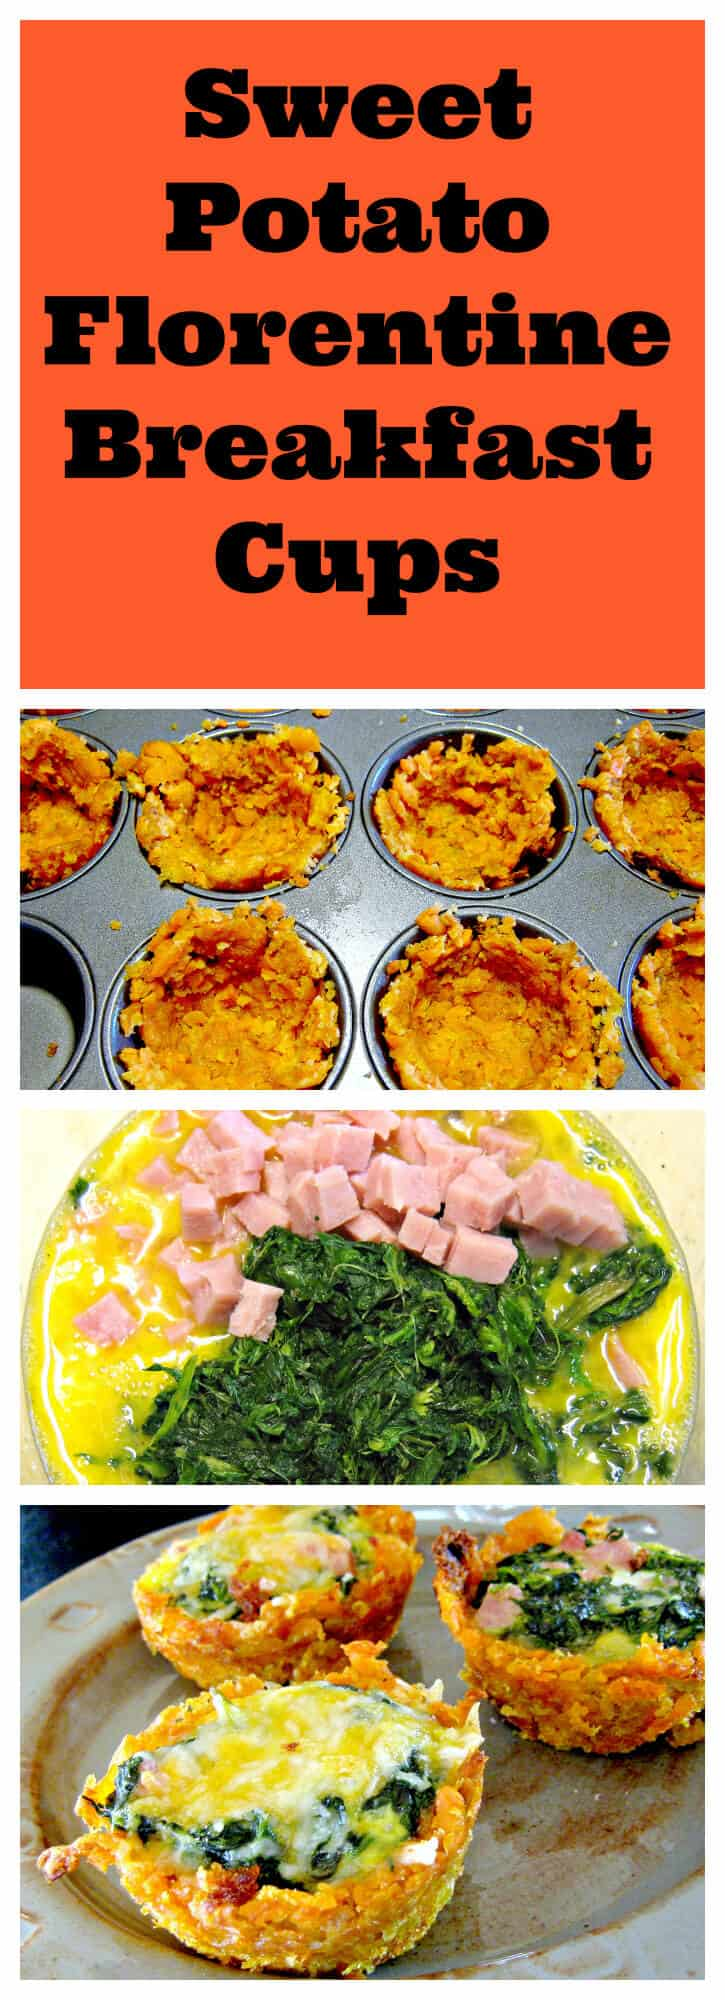 Sweet potato cups filled with ham, spinach and egg make a delicious breakfast or snack.